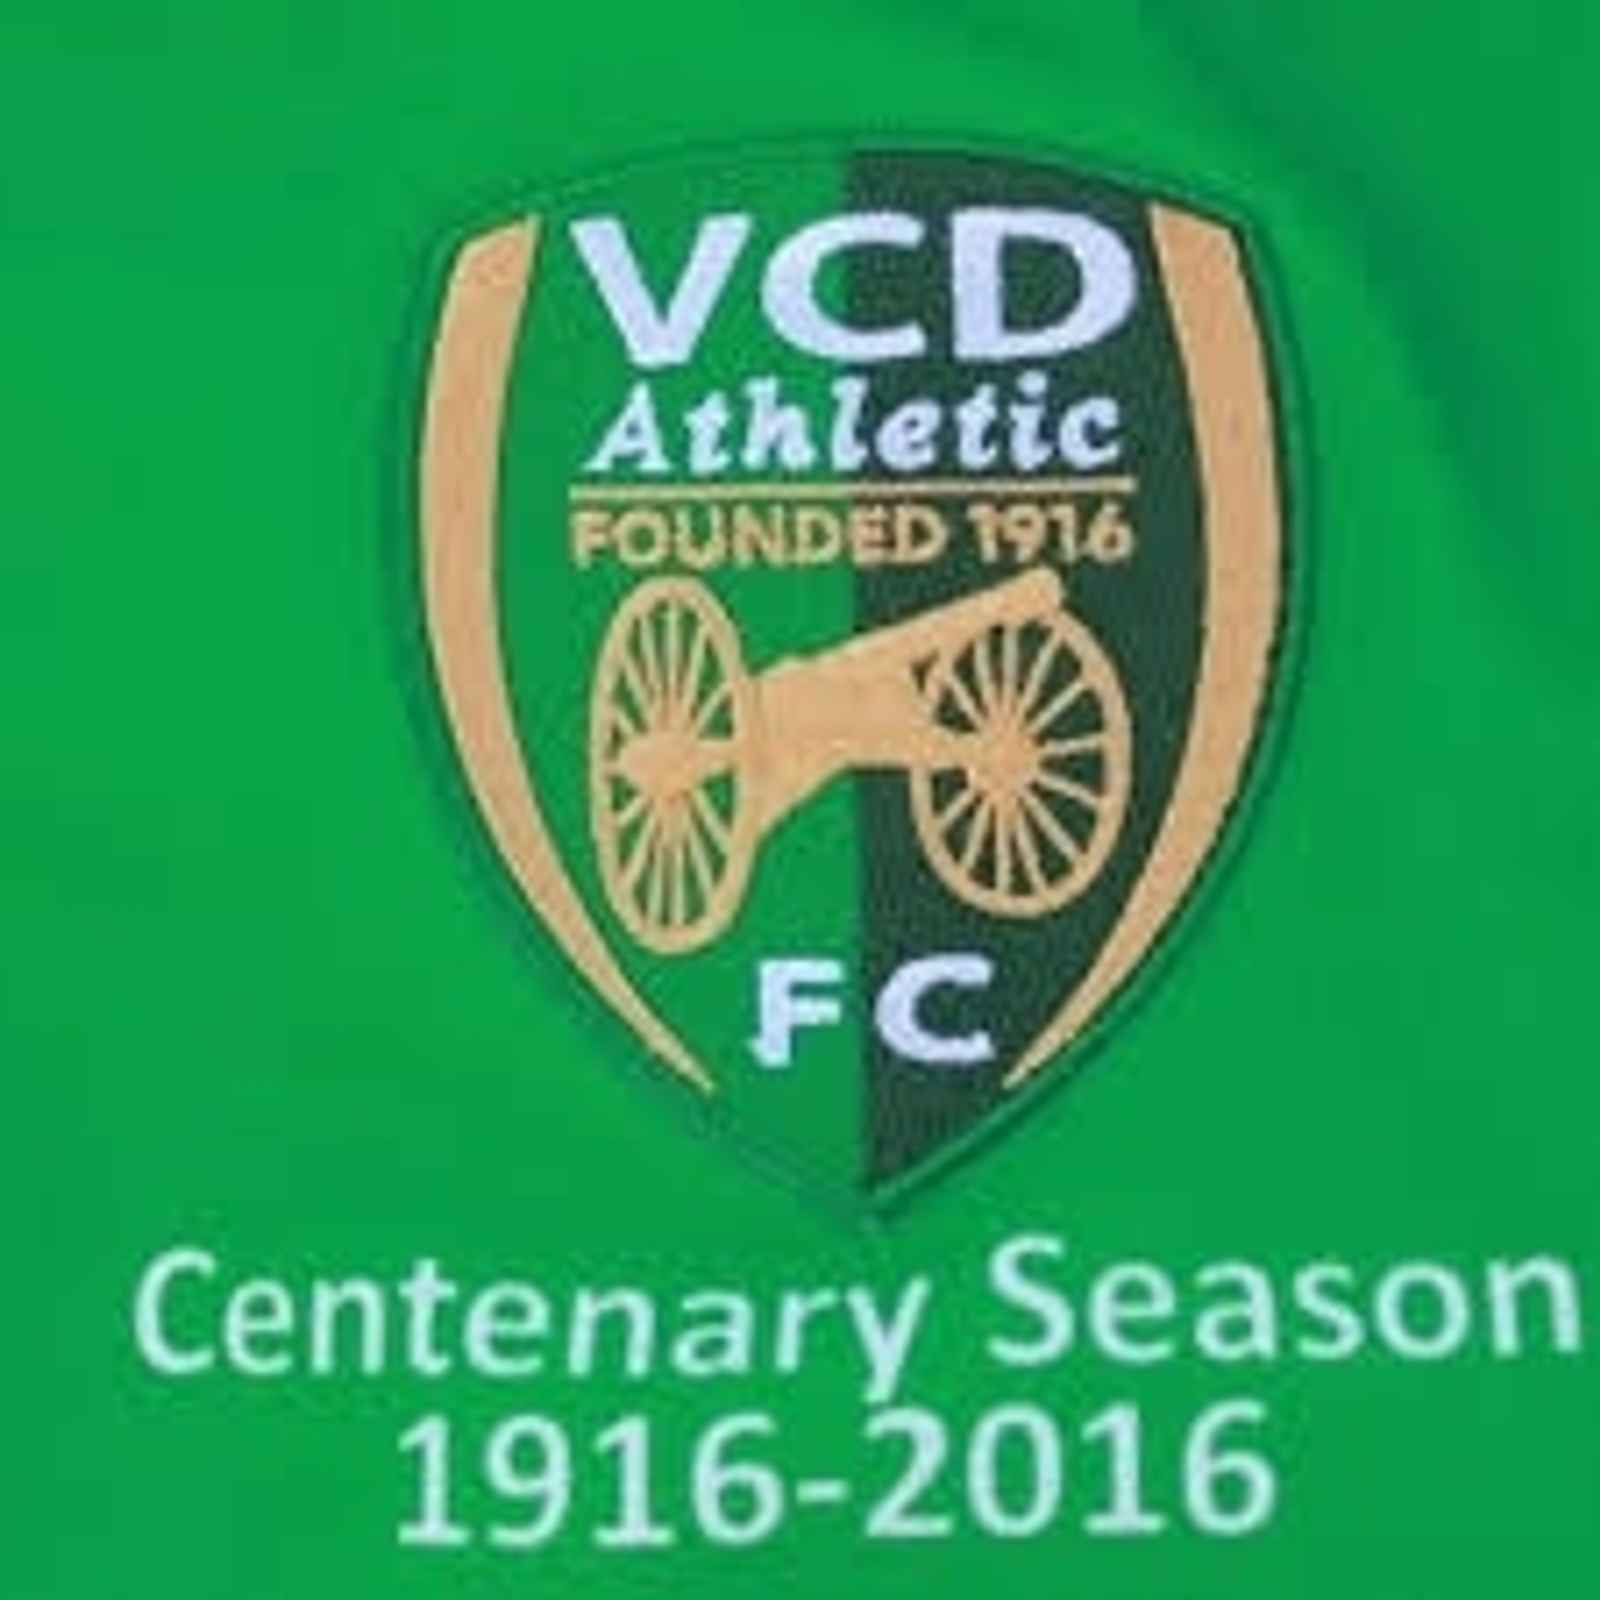 Next up - VCD Athletic home on Saturday.